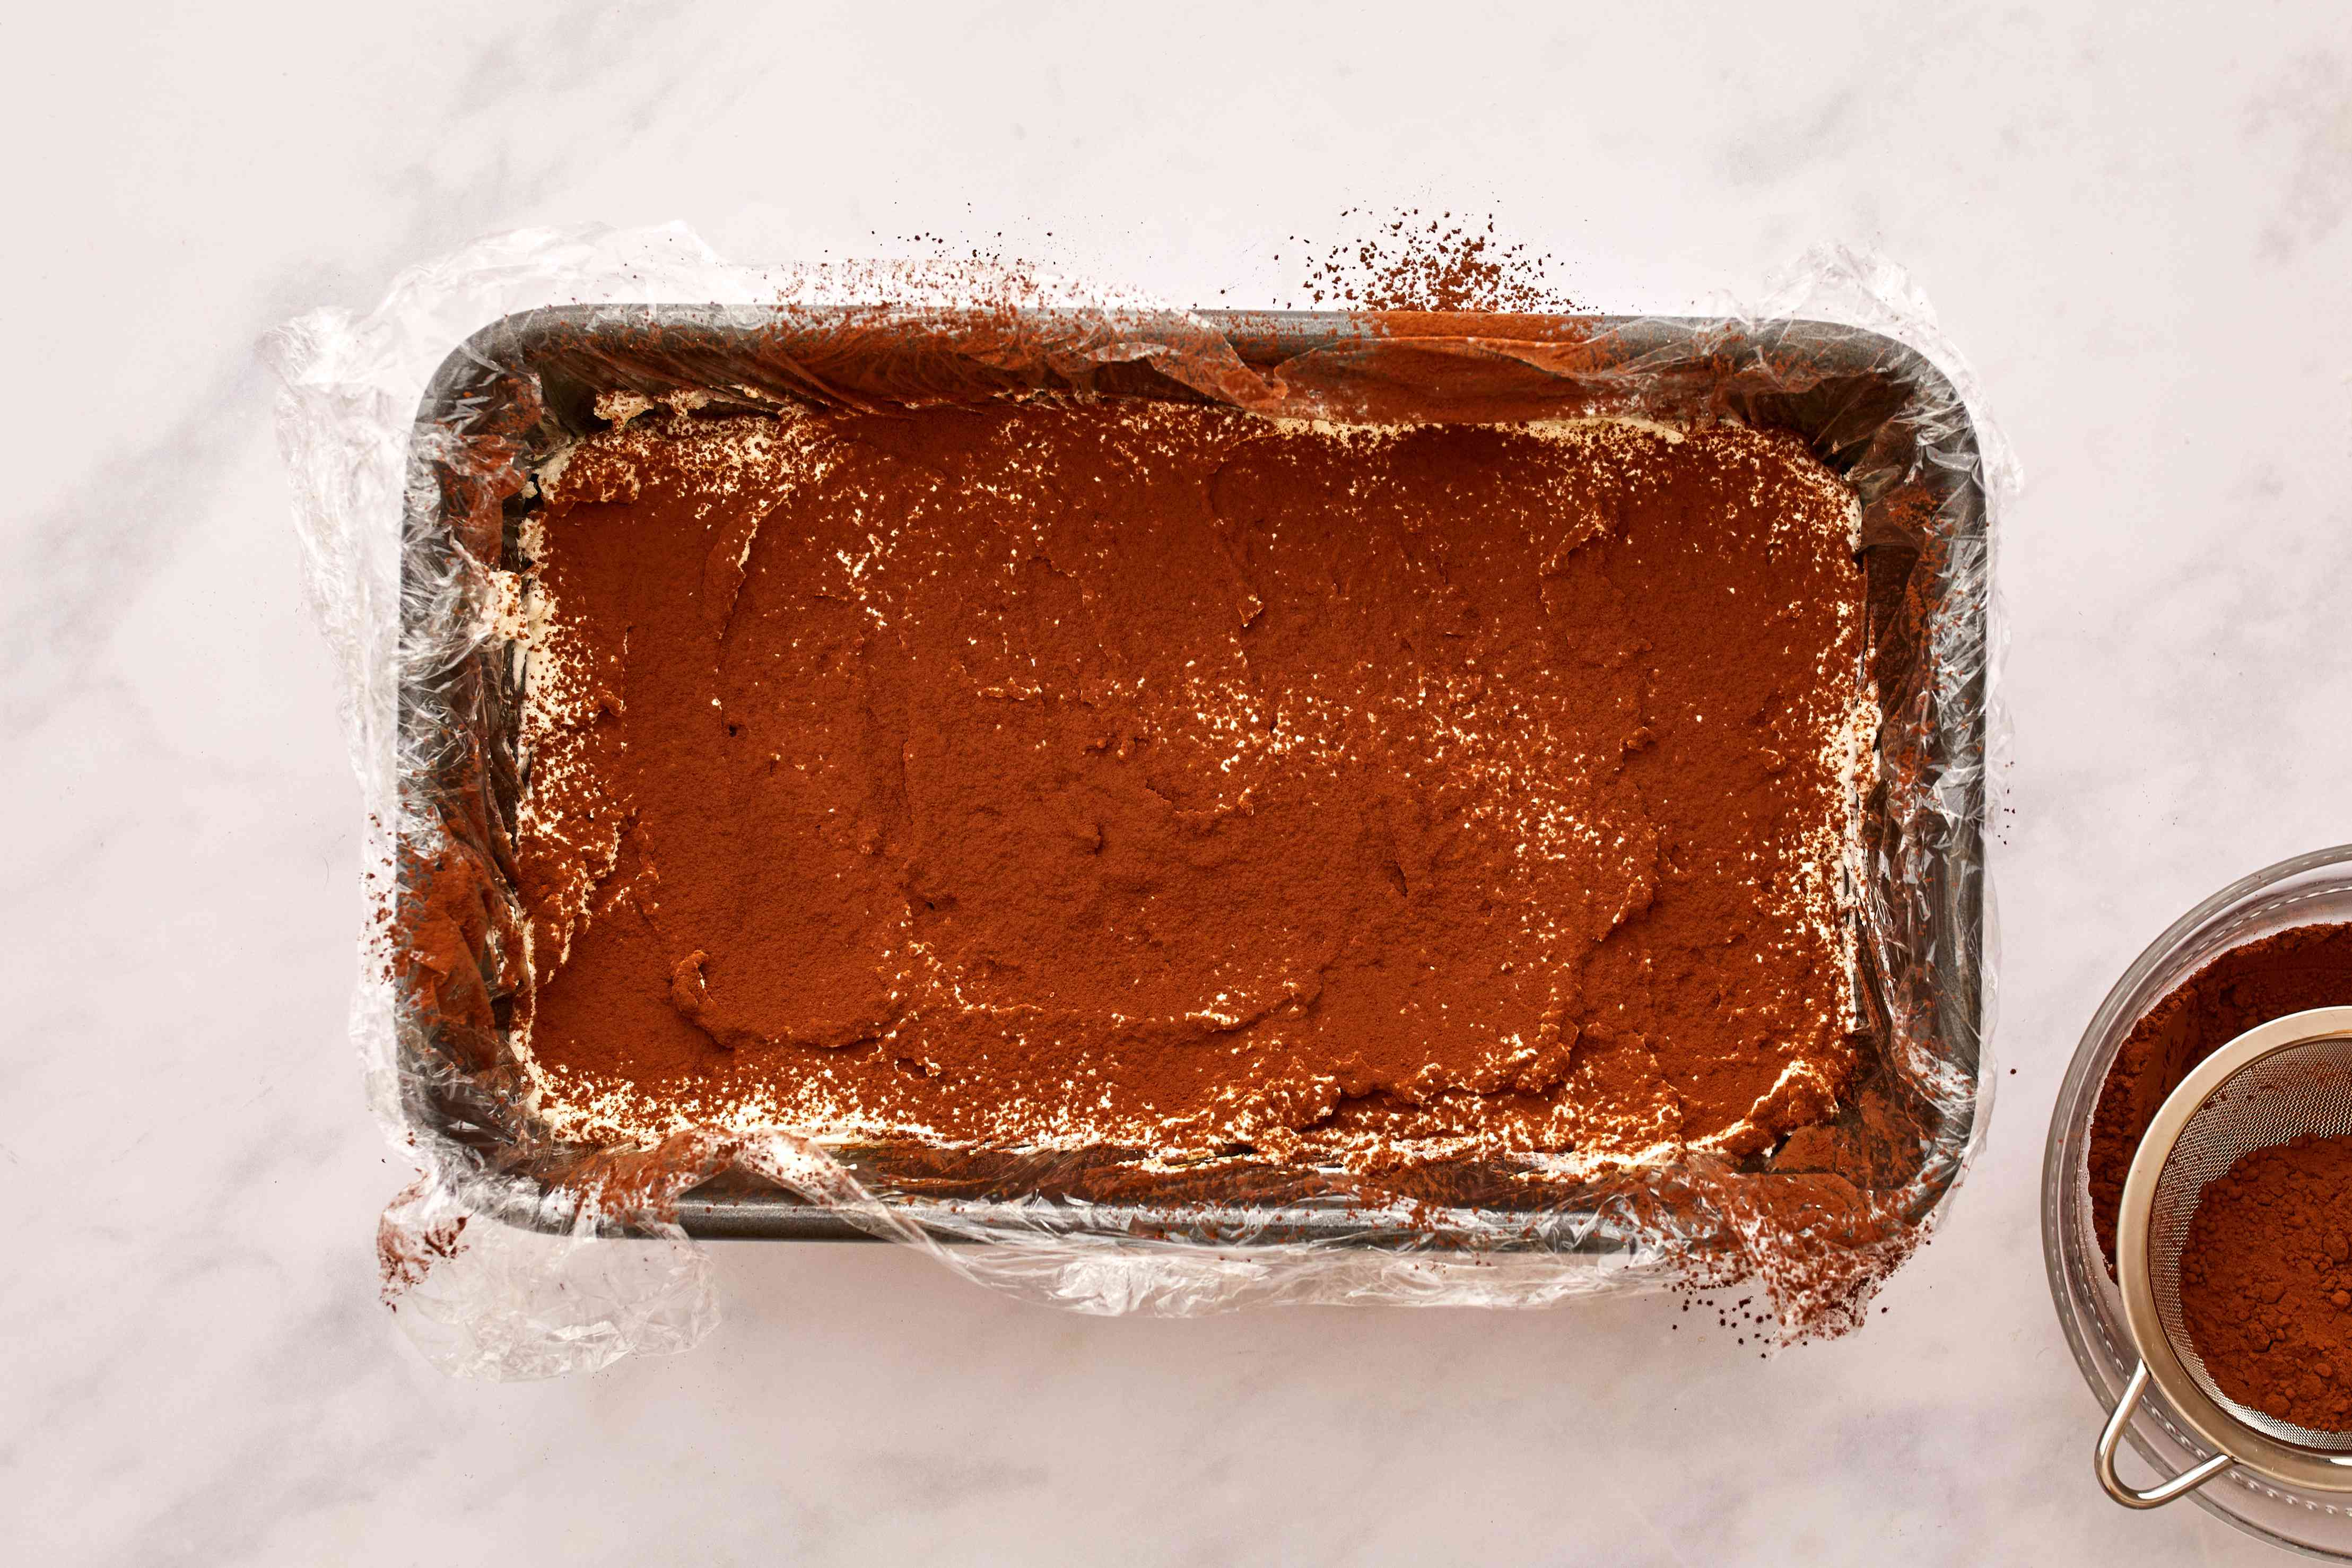 each layer of tiramisu being sprinkled with cocoa powder